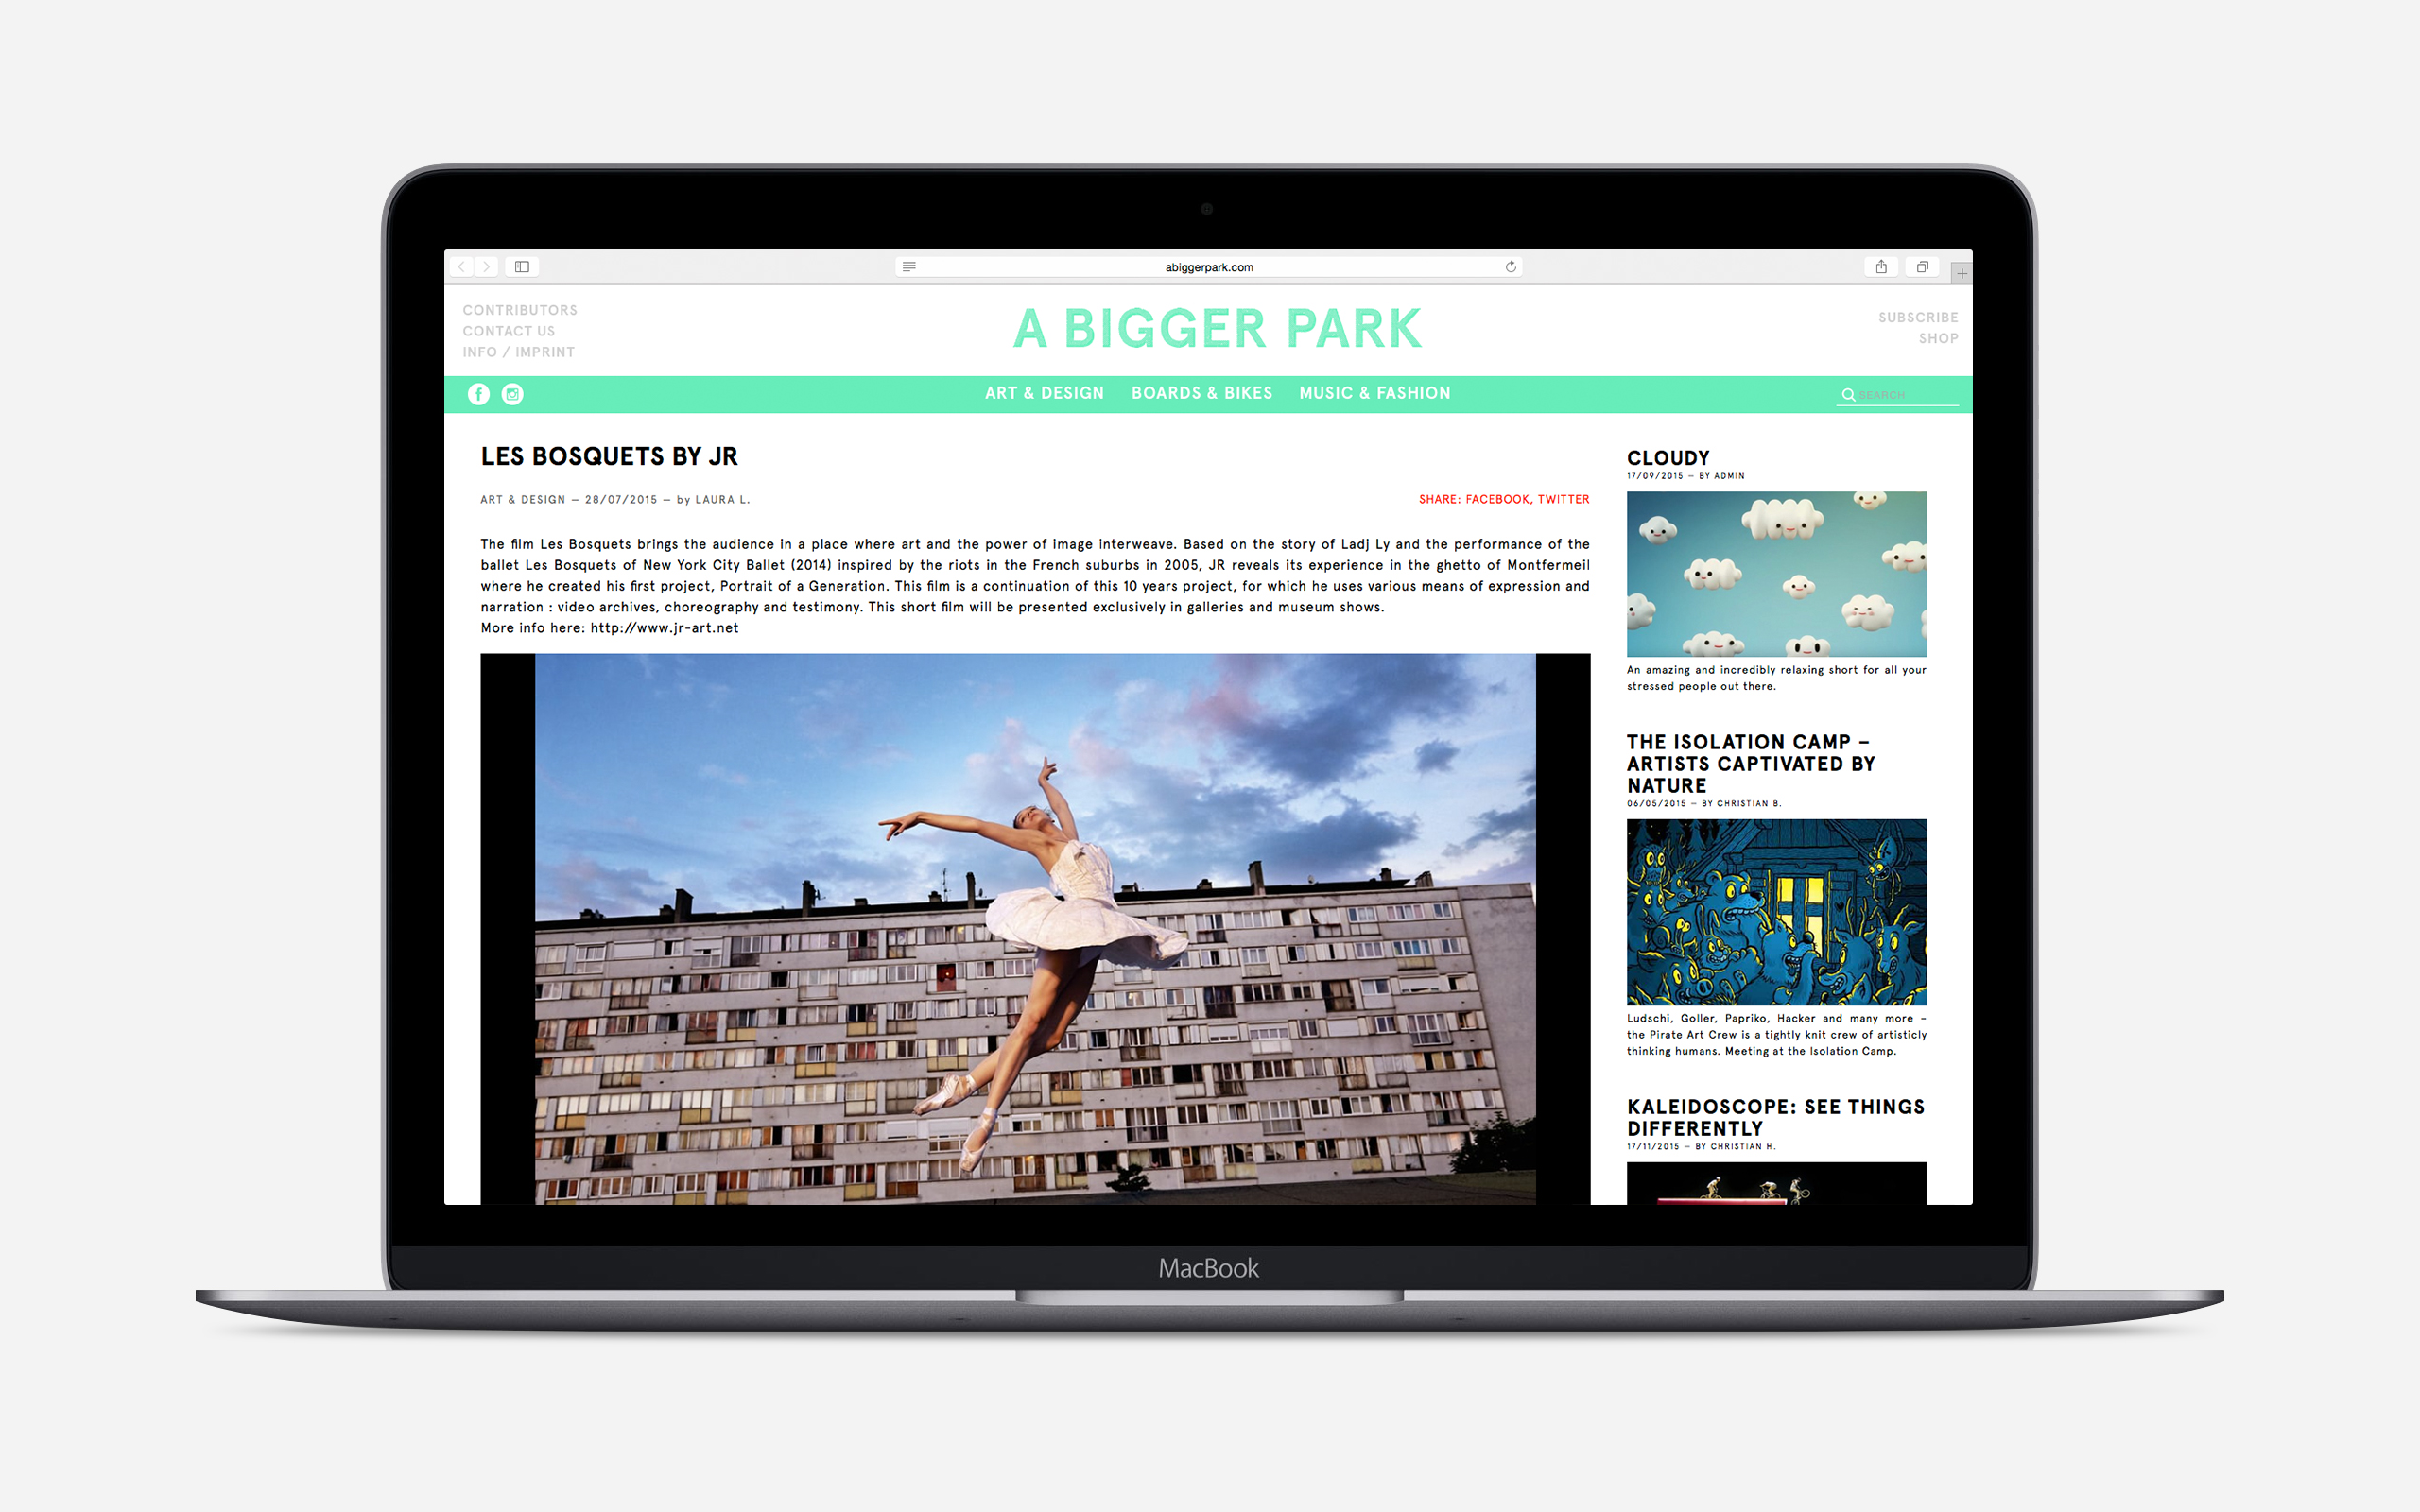 20151207-A Bigger Park-Website-4